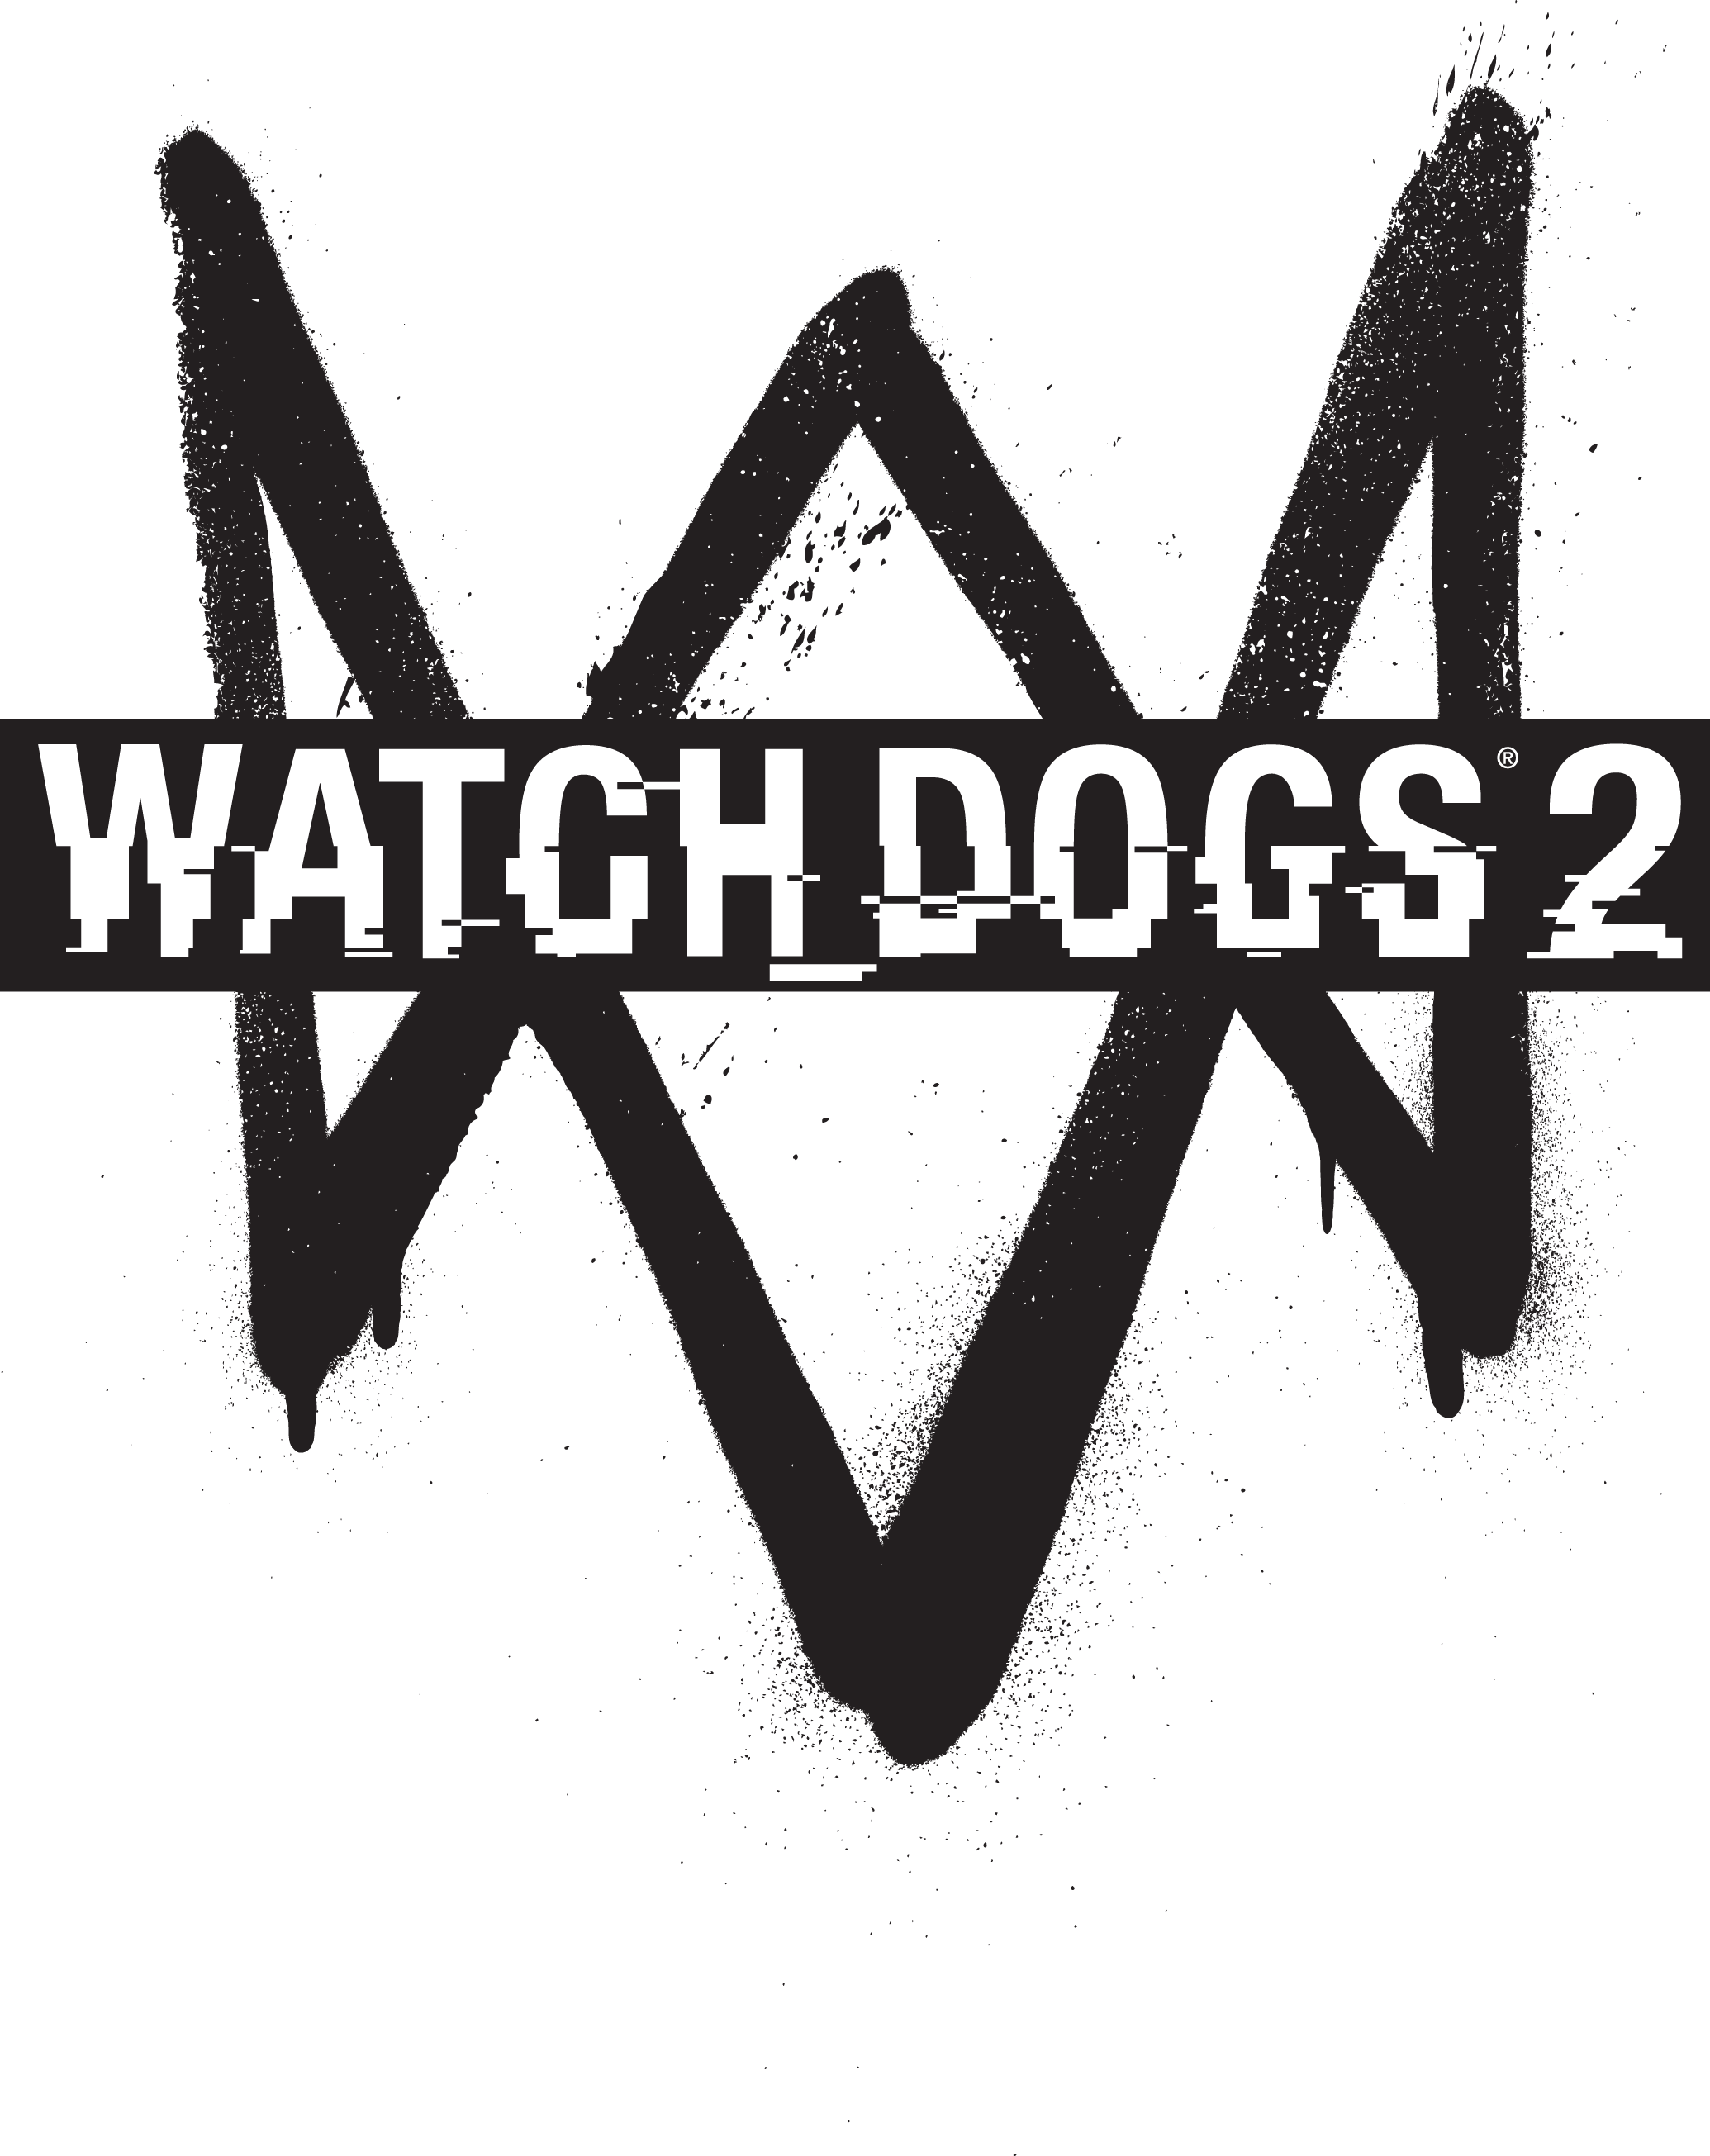 Watch Dogs Clipart Hd Wallpaper Watch Dogs 2 Icon 1175490